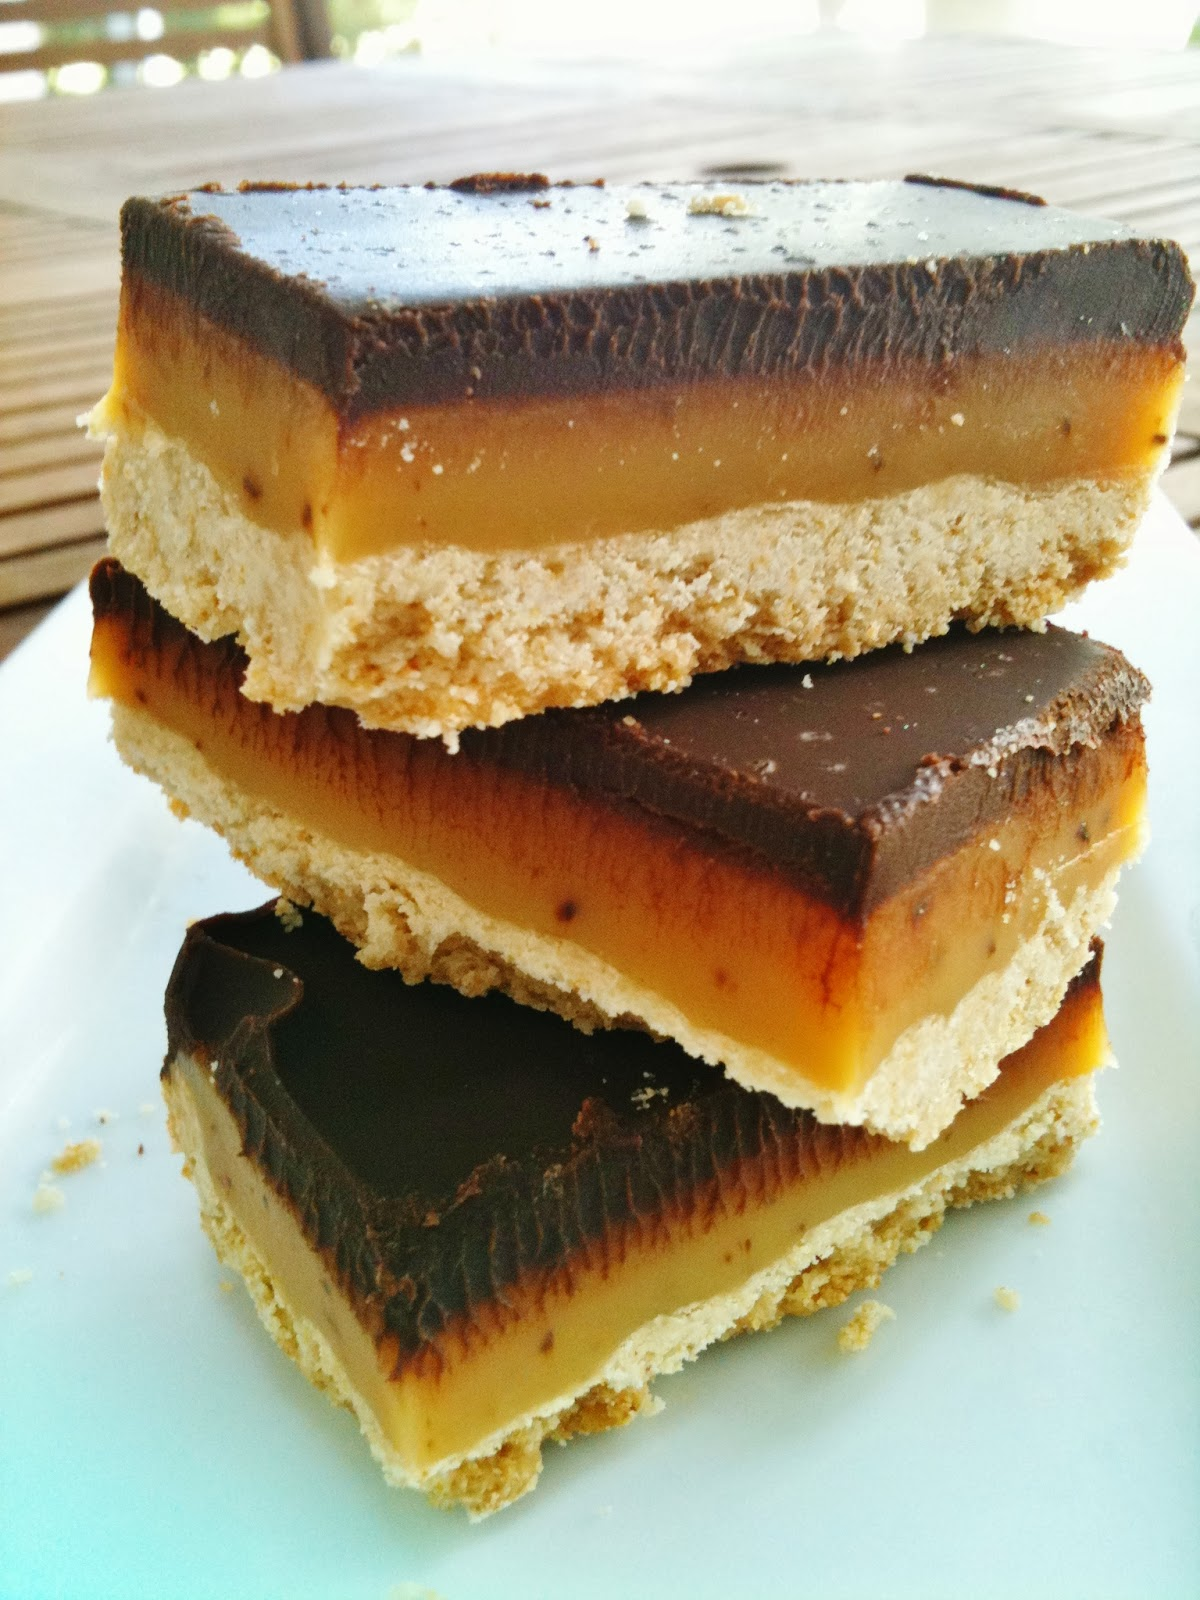 Salted Caramel Chocolate Shortbread Bars | Cook'n is Fun - Food ...